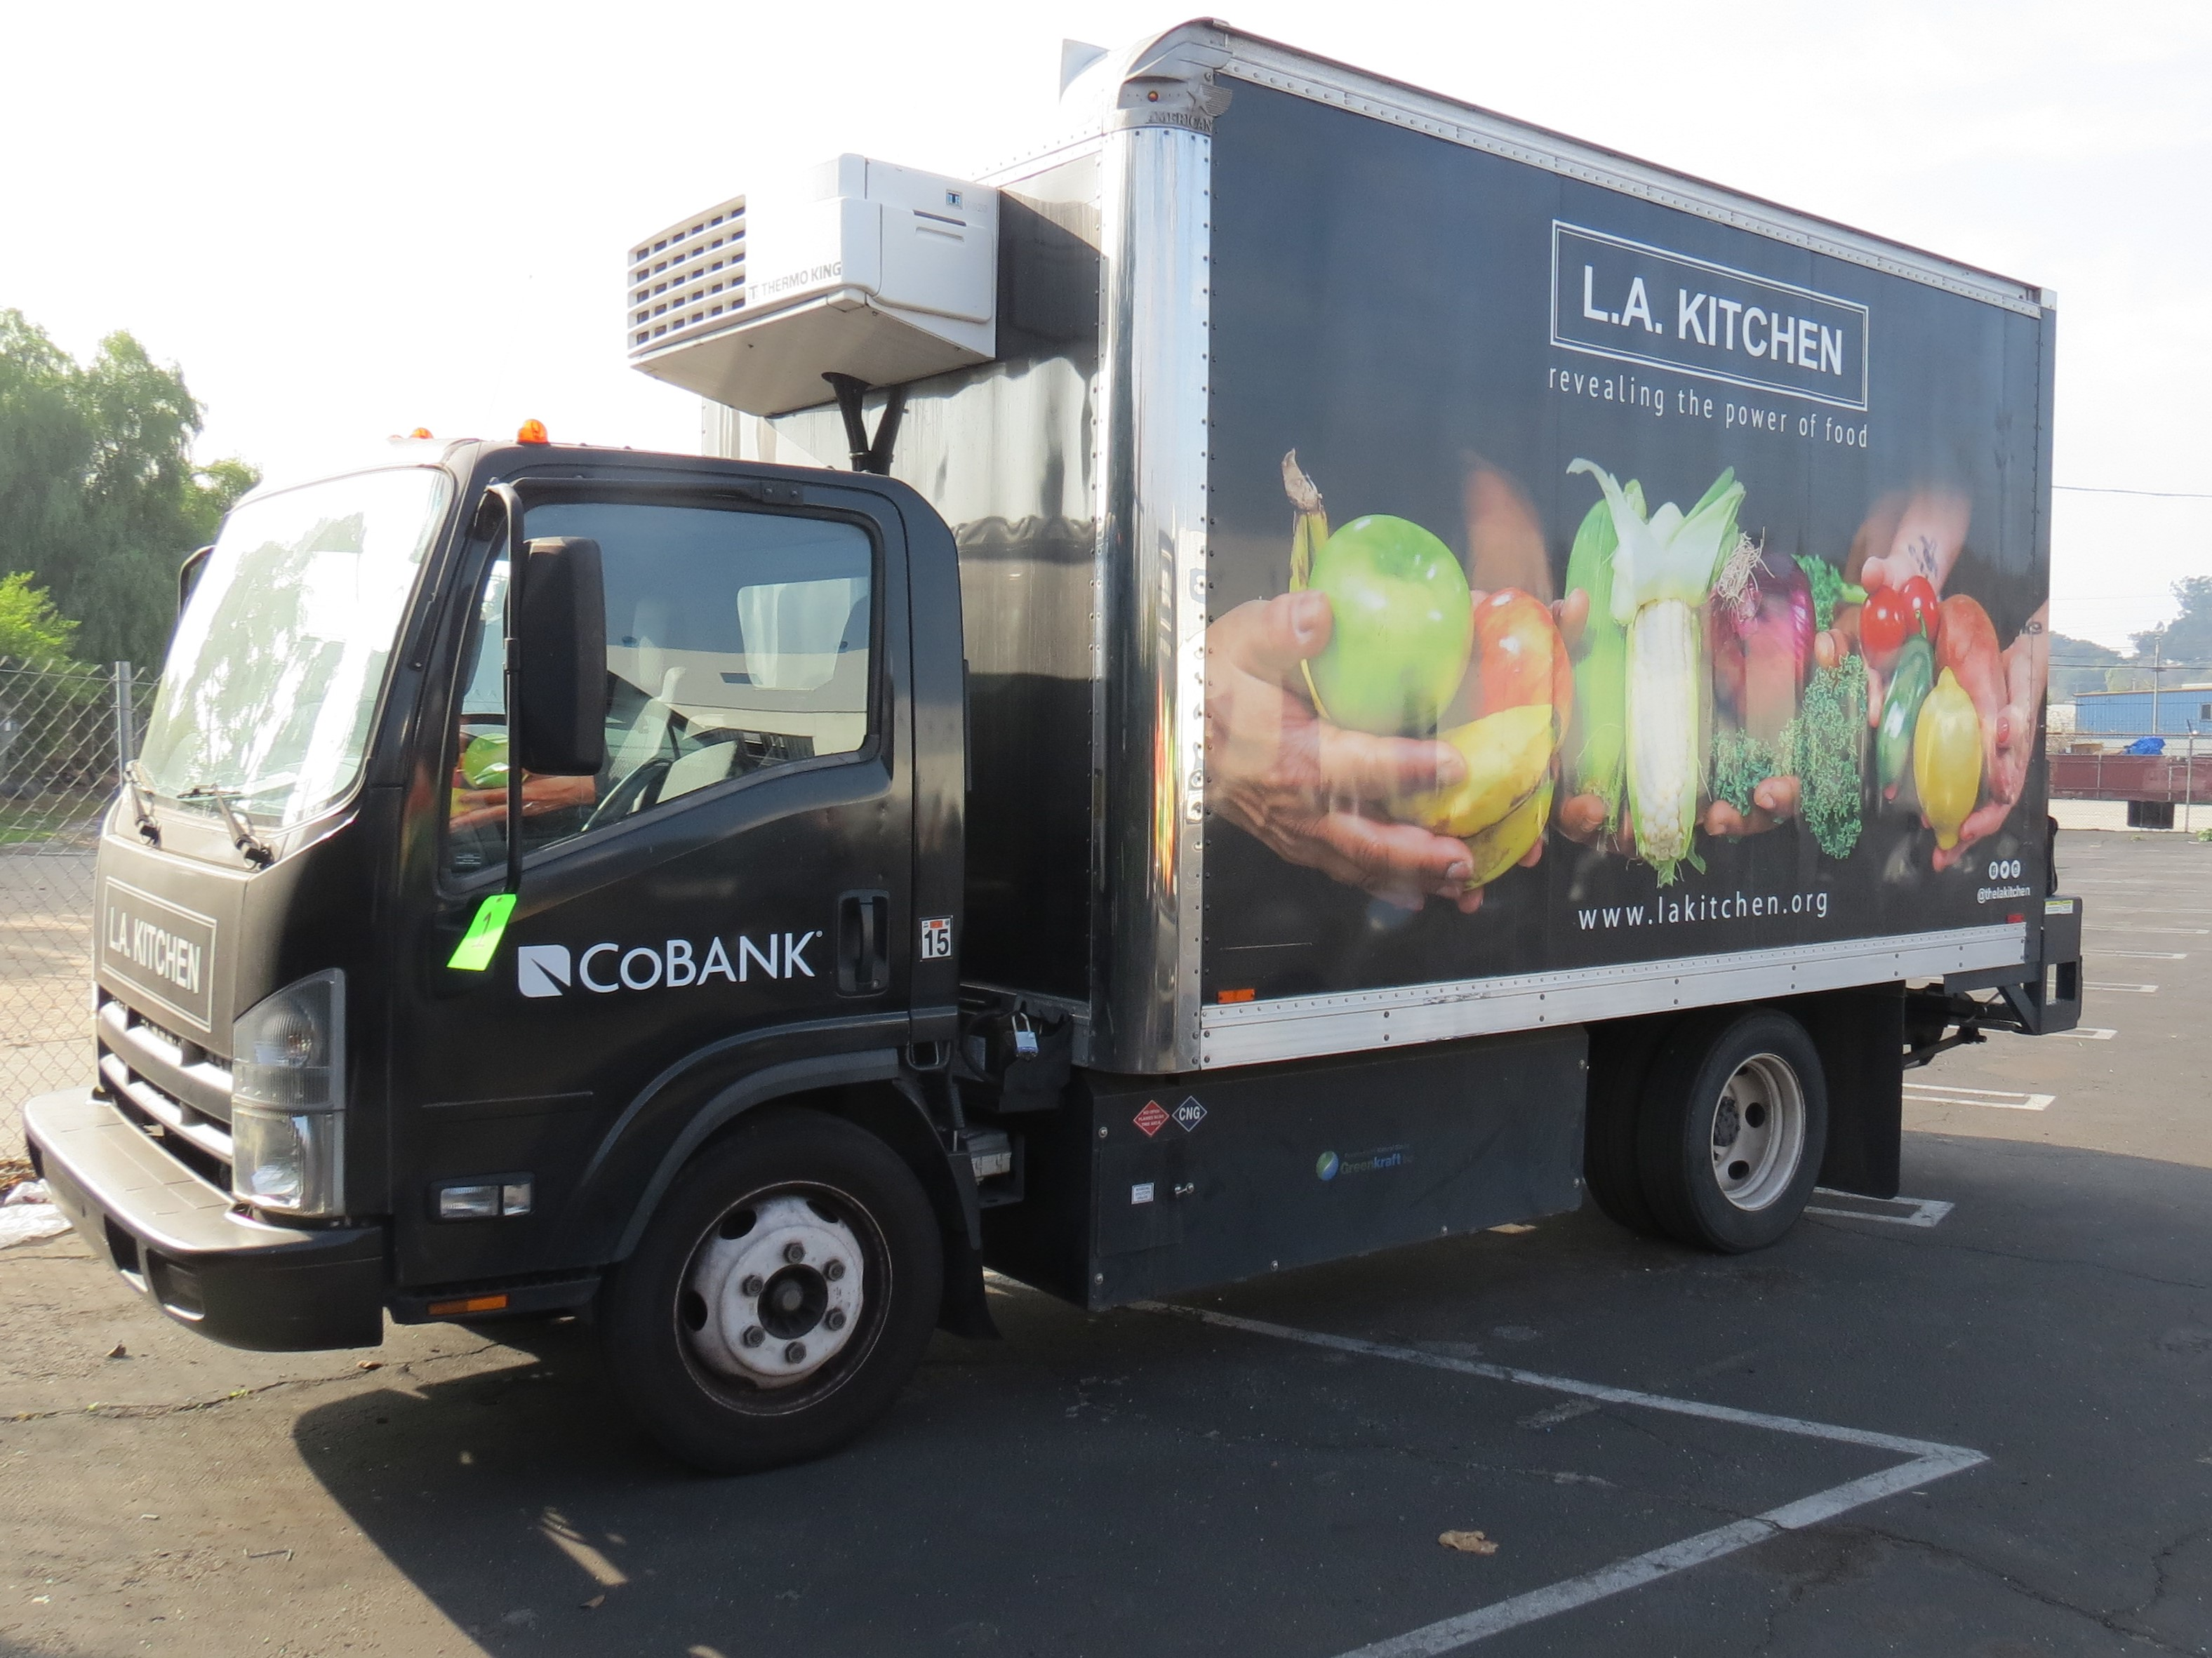 Lot 1 - 2012, ISUZU REFRIGERATED BOX TRUCK, 16' BOX, LIFTGATE, SIDE DOOR, 102,800 MILES,CNG FUEL